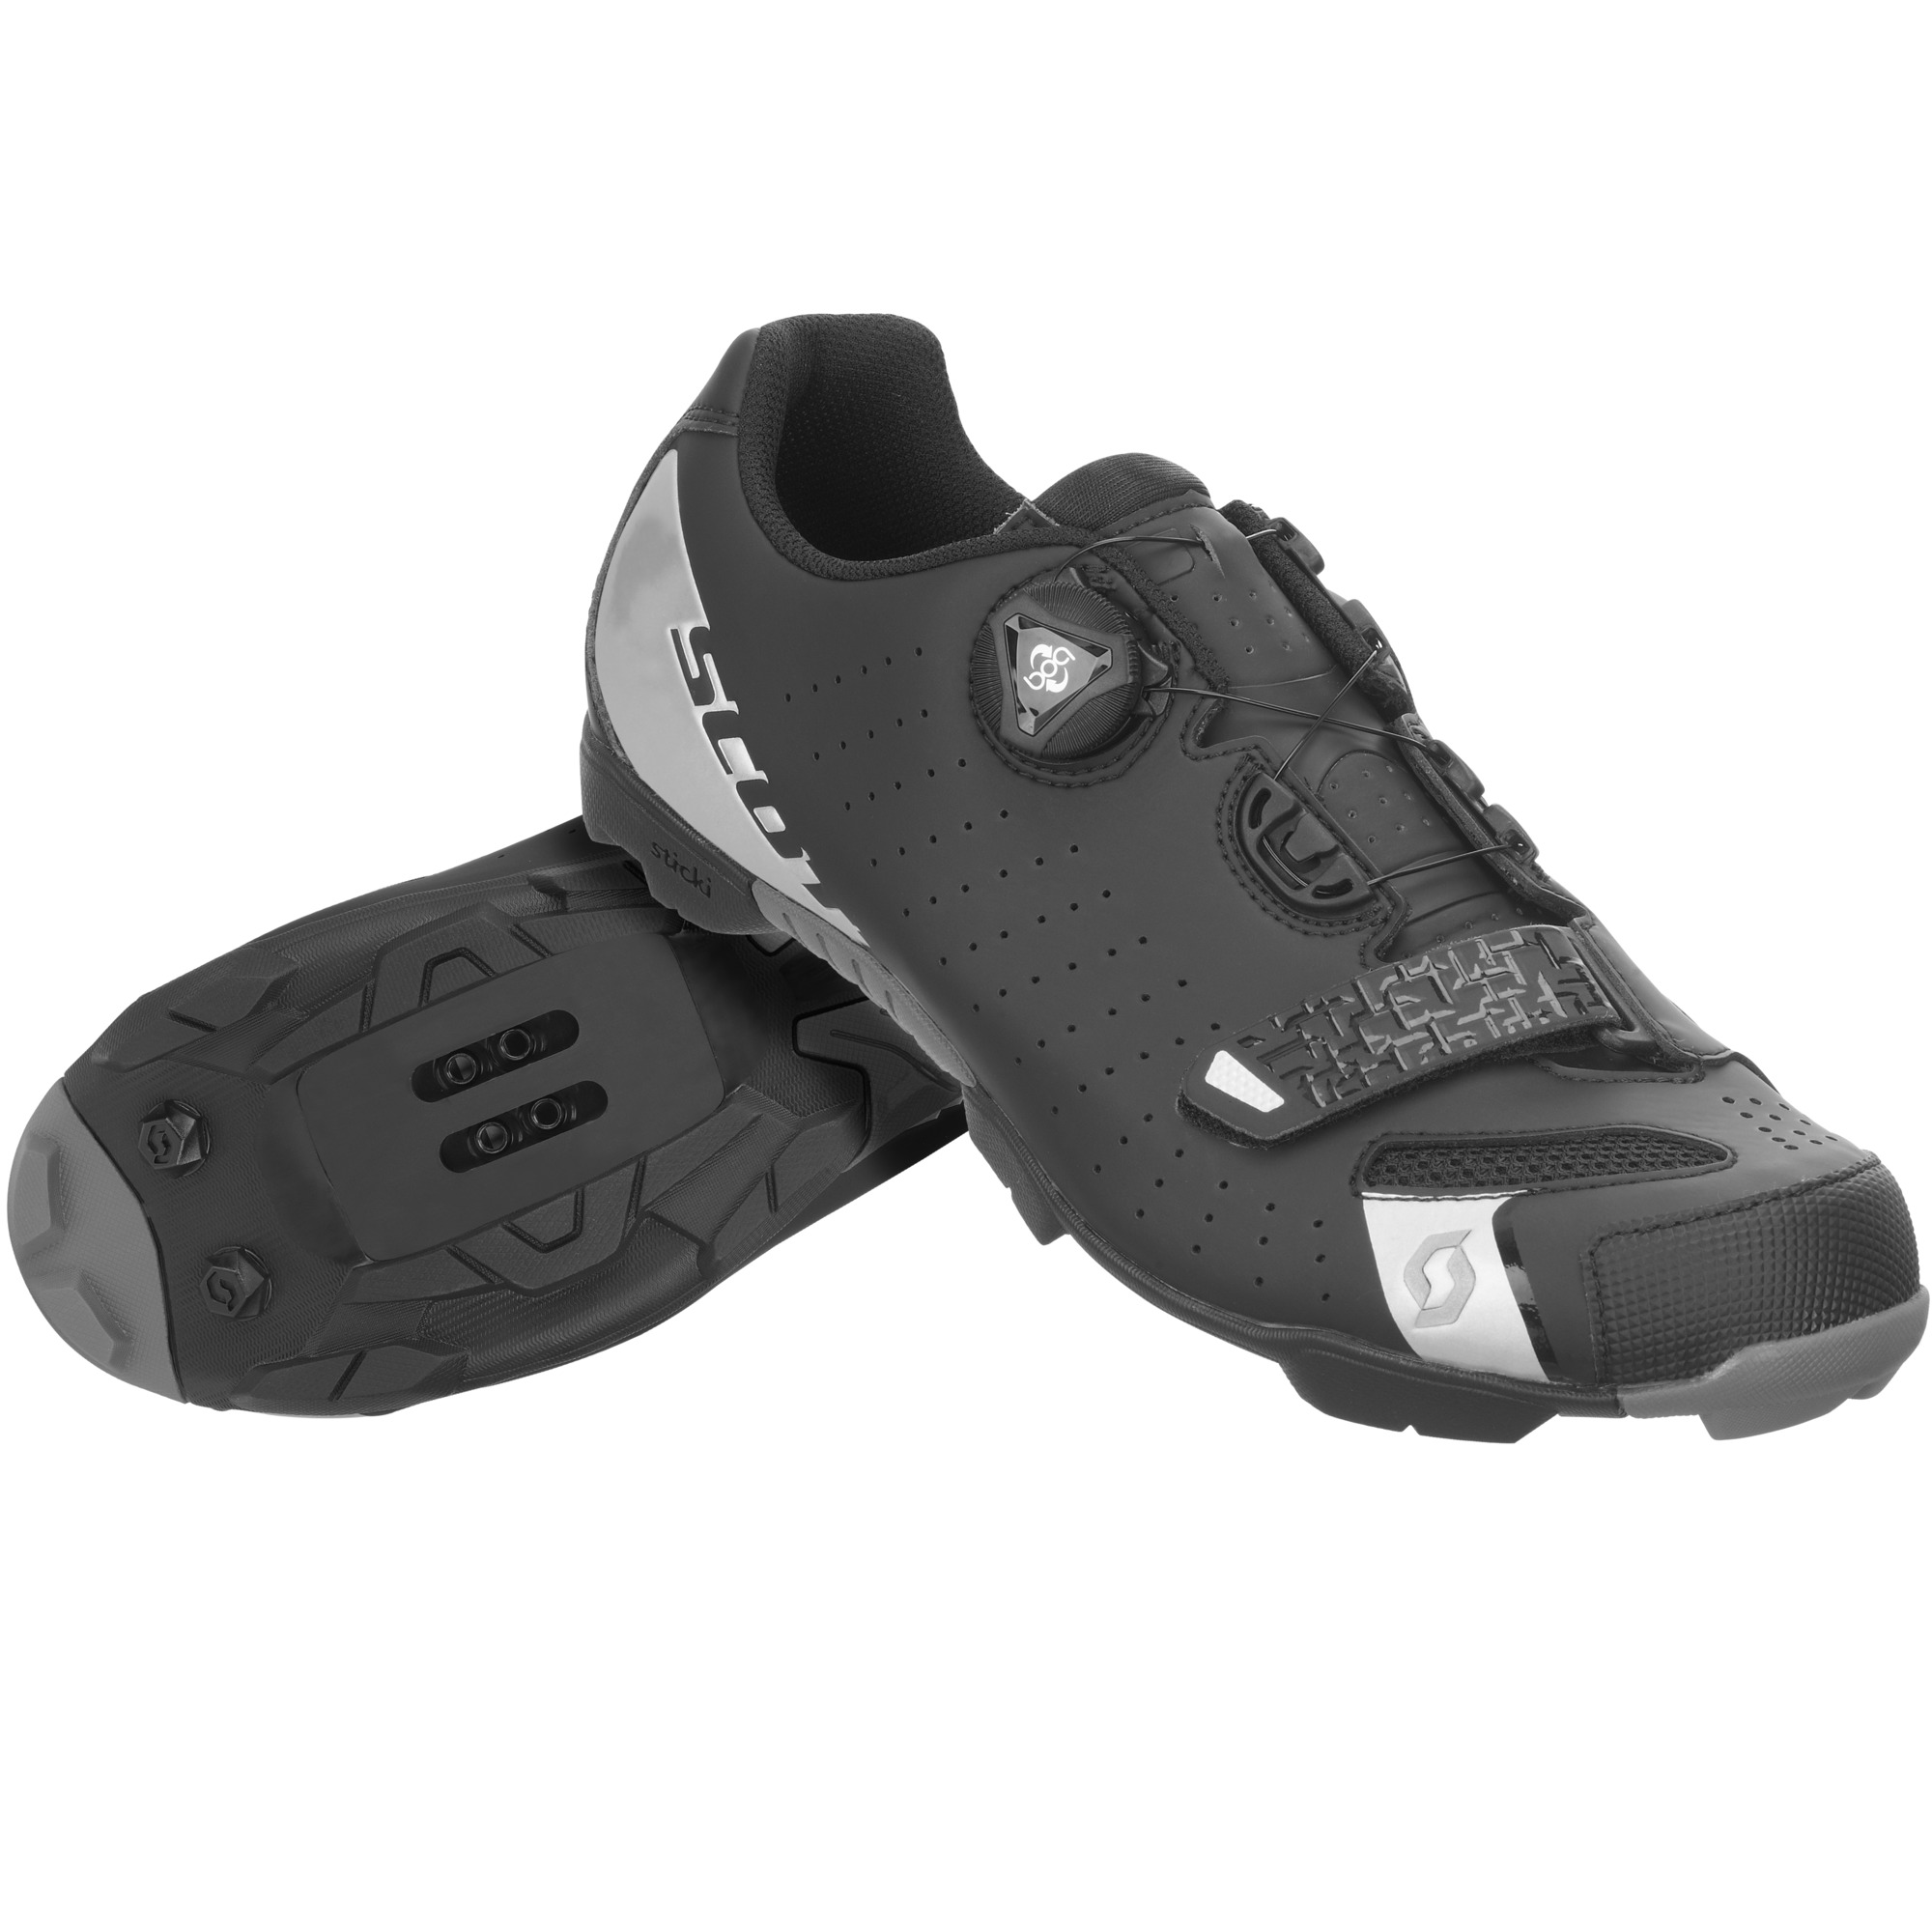 Scott Mtb Comp Boa Shoes 48 Outsole Composite Two Component Pu